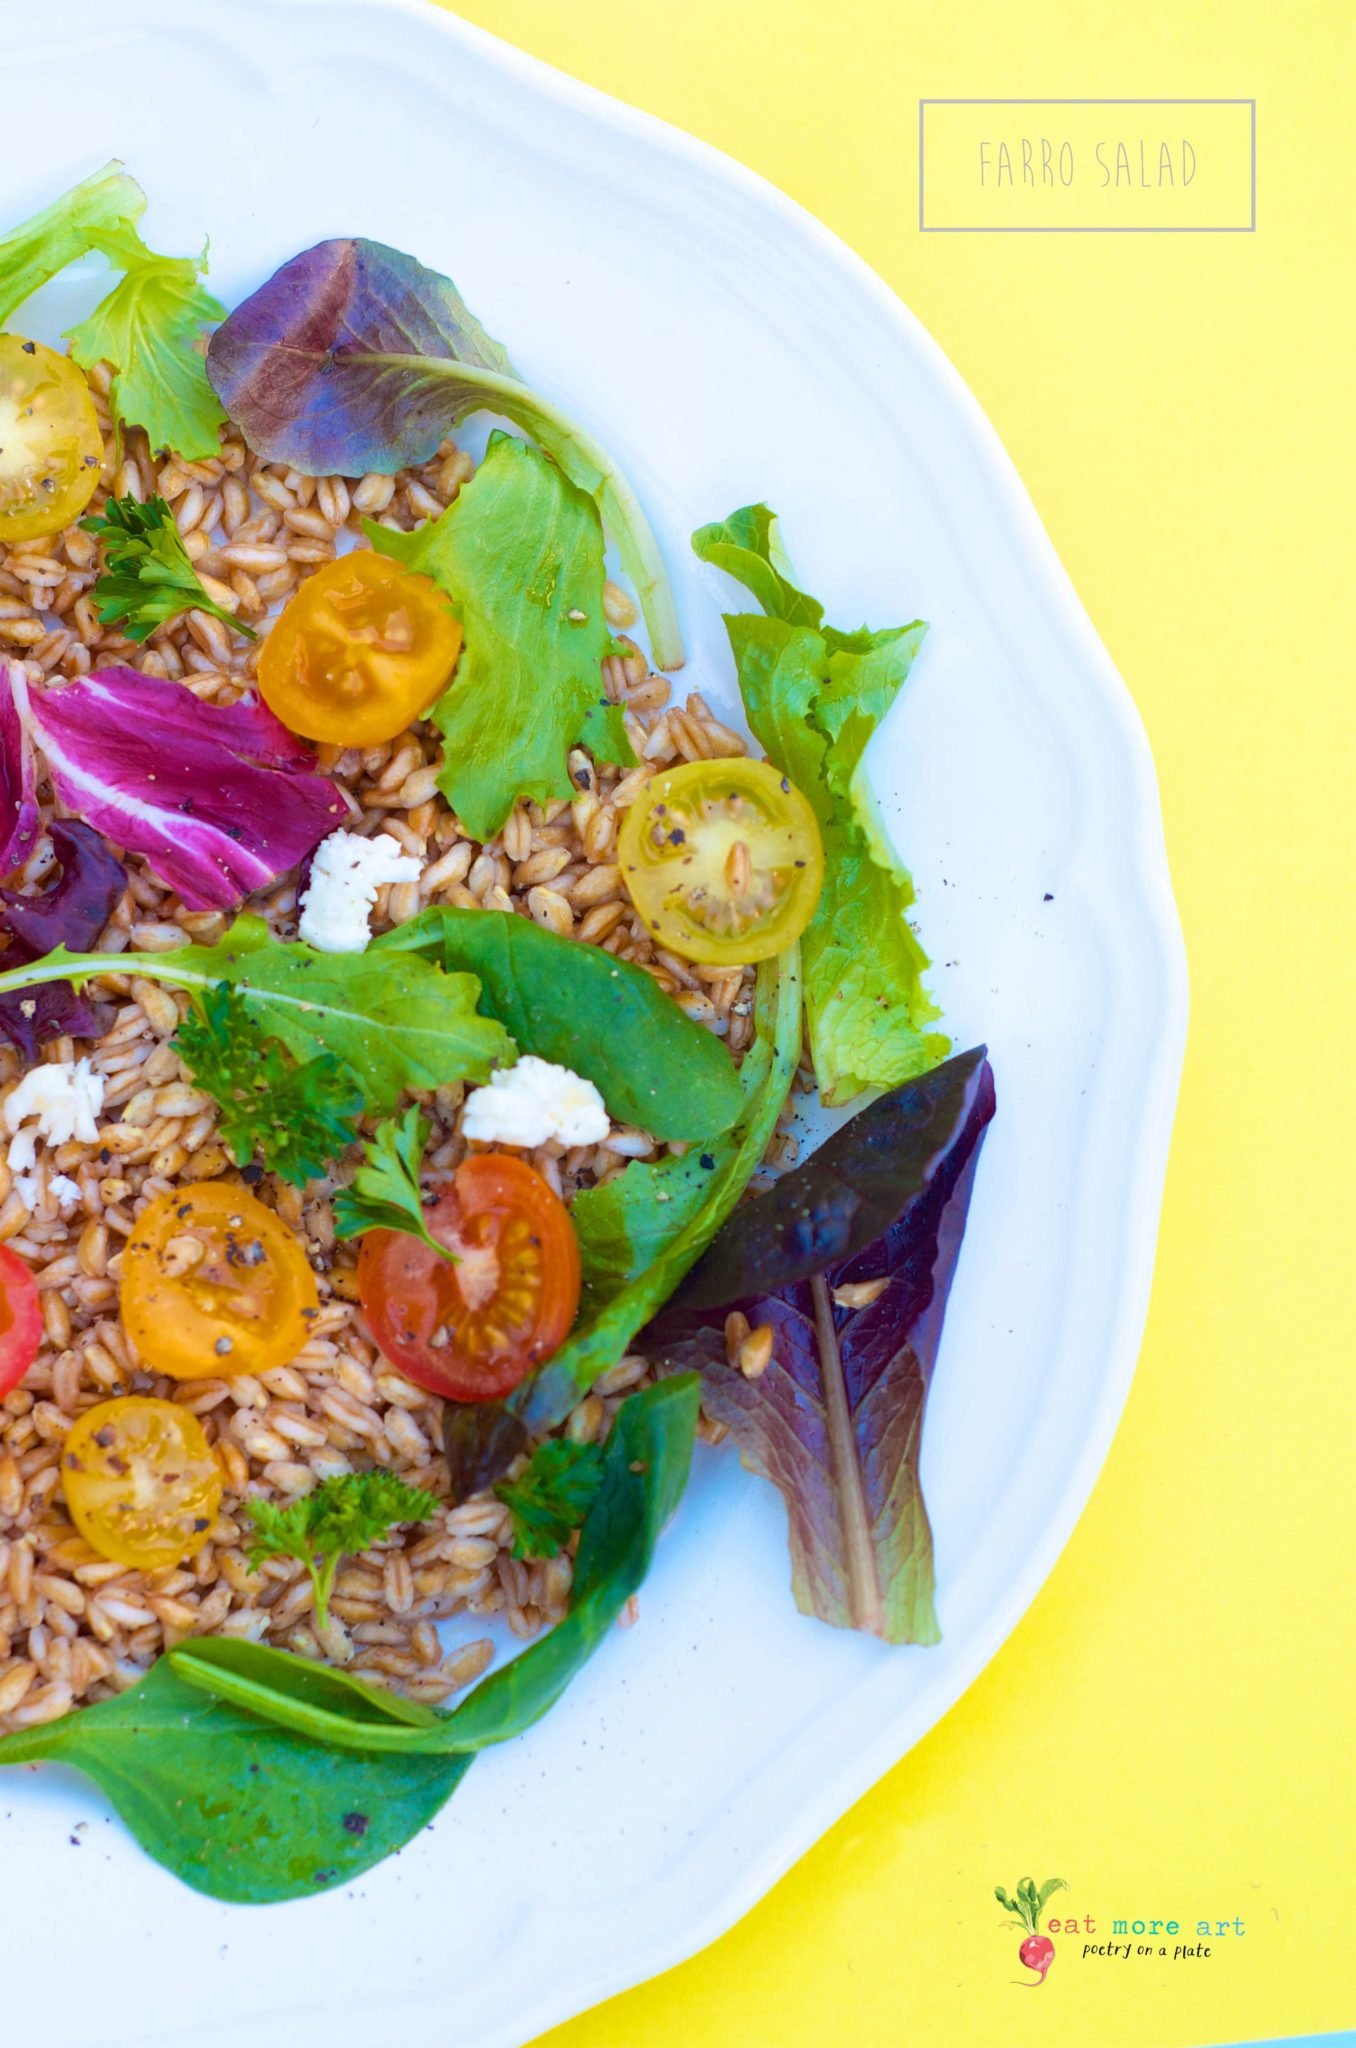 A plate of colorful farro salad